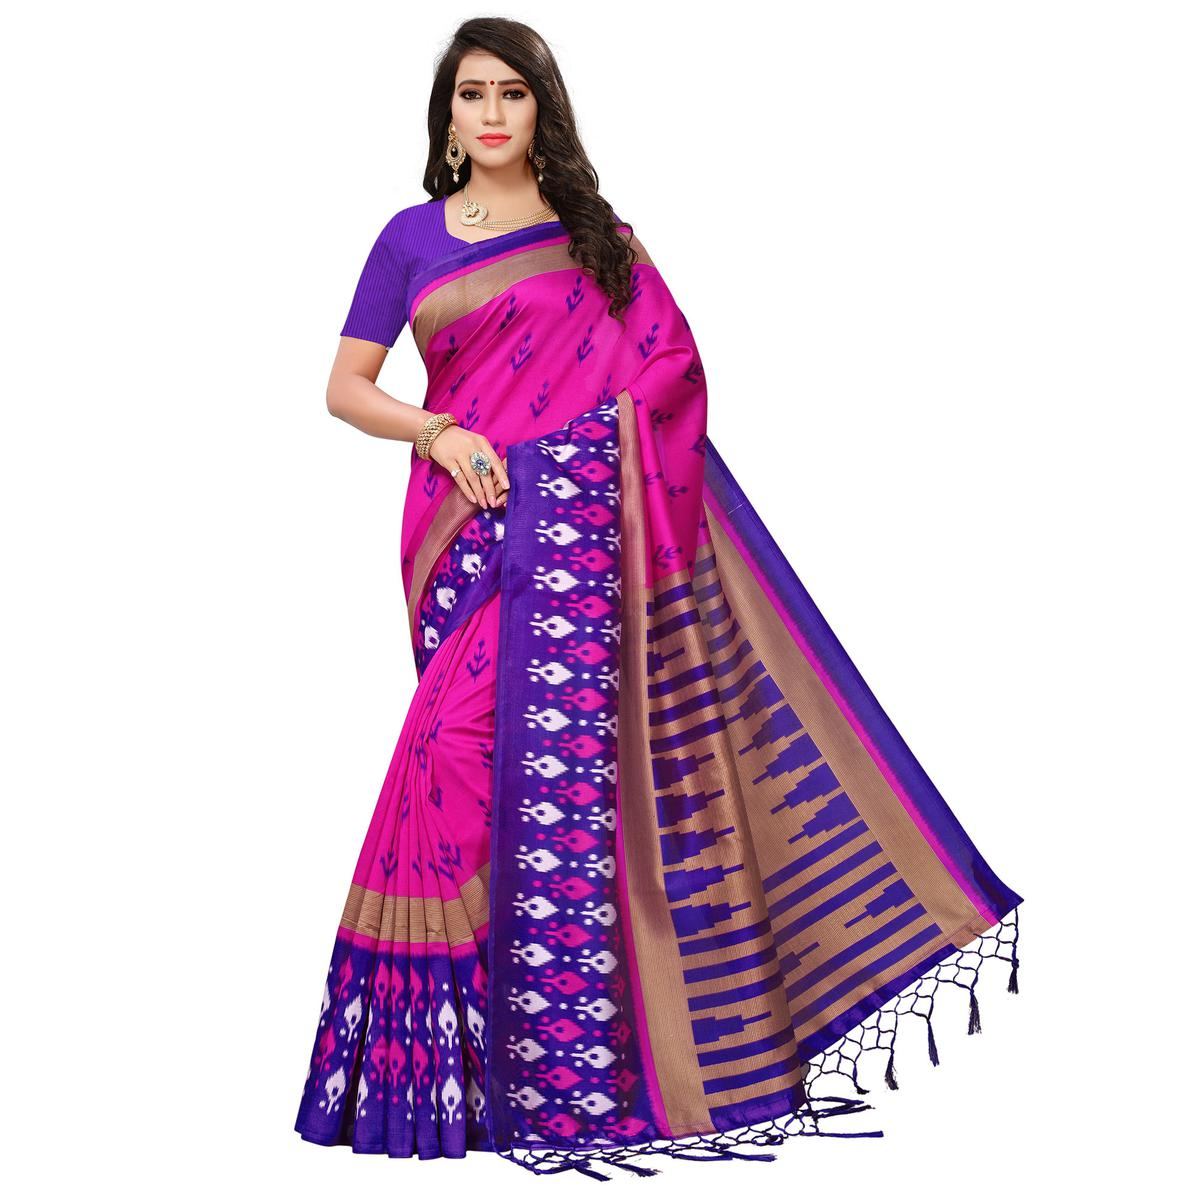 Trendy Pink-Purple Colored Printed Festive Wear Mysore Art Silk Saree